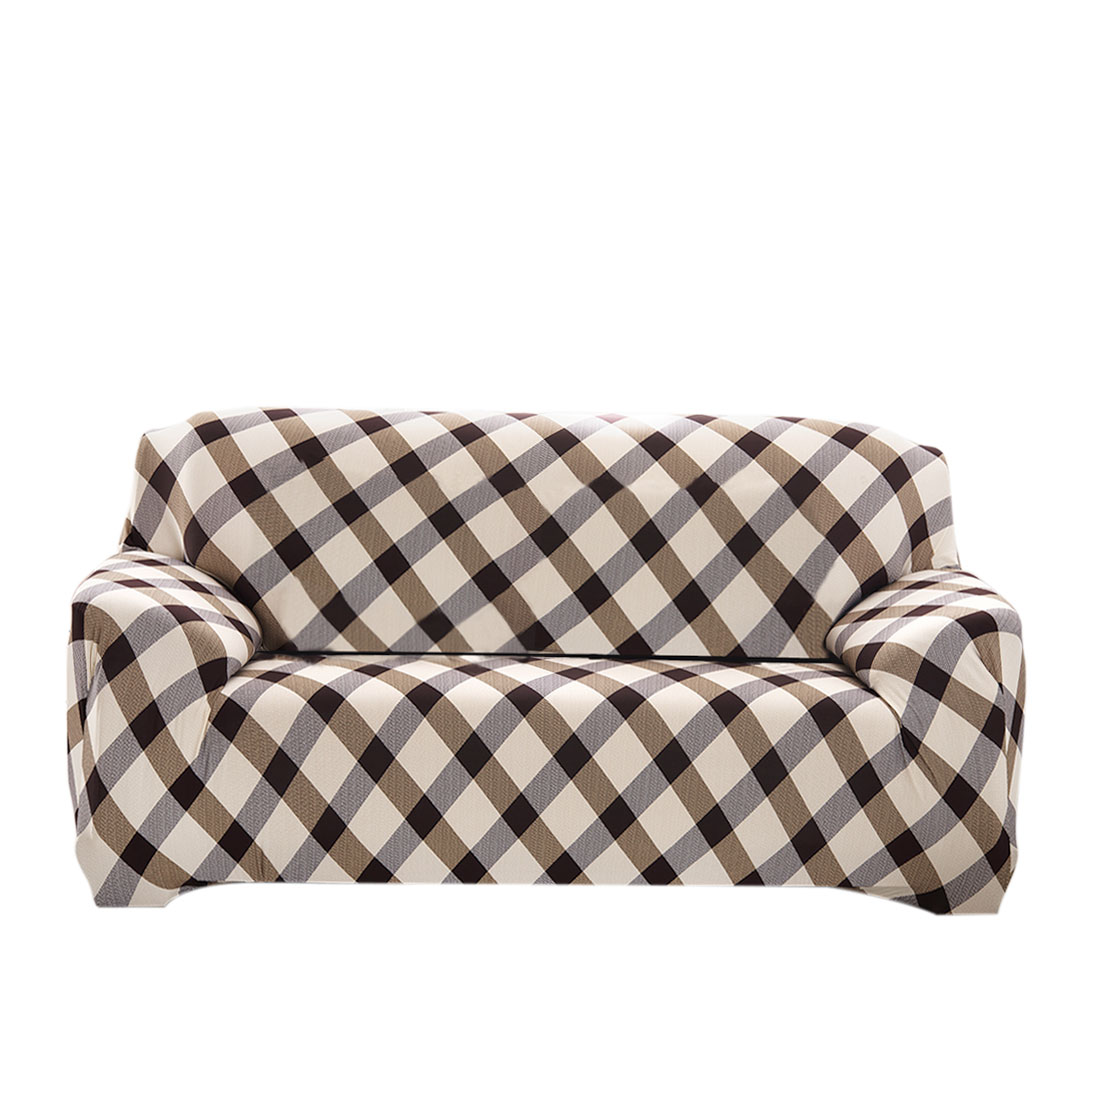 Household Polyester Grid Pattern Elastic Sofa Loveseat Cover Slipcover Protector 55-74 Inch